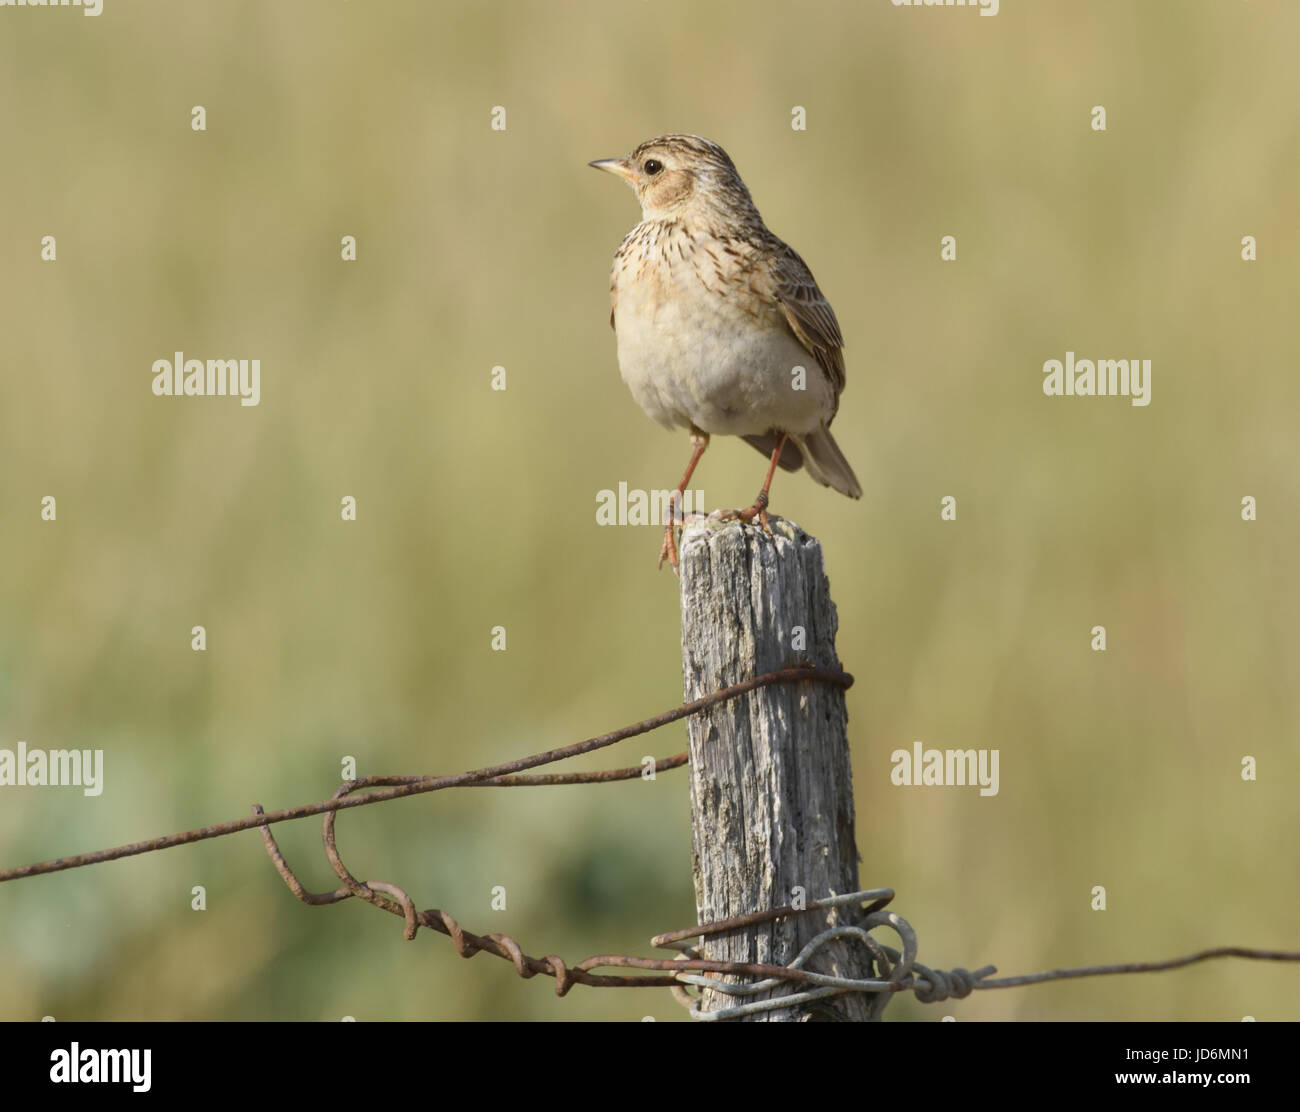 A skylark (Alauda arvensis) stands on an old fence post. Rye Harbour Nature Reserve. Rye, Sussex, England, UK - Stock Image